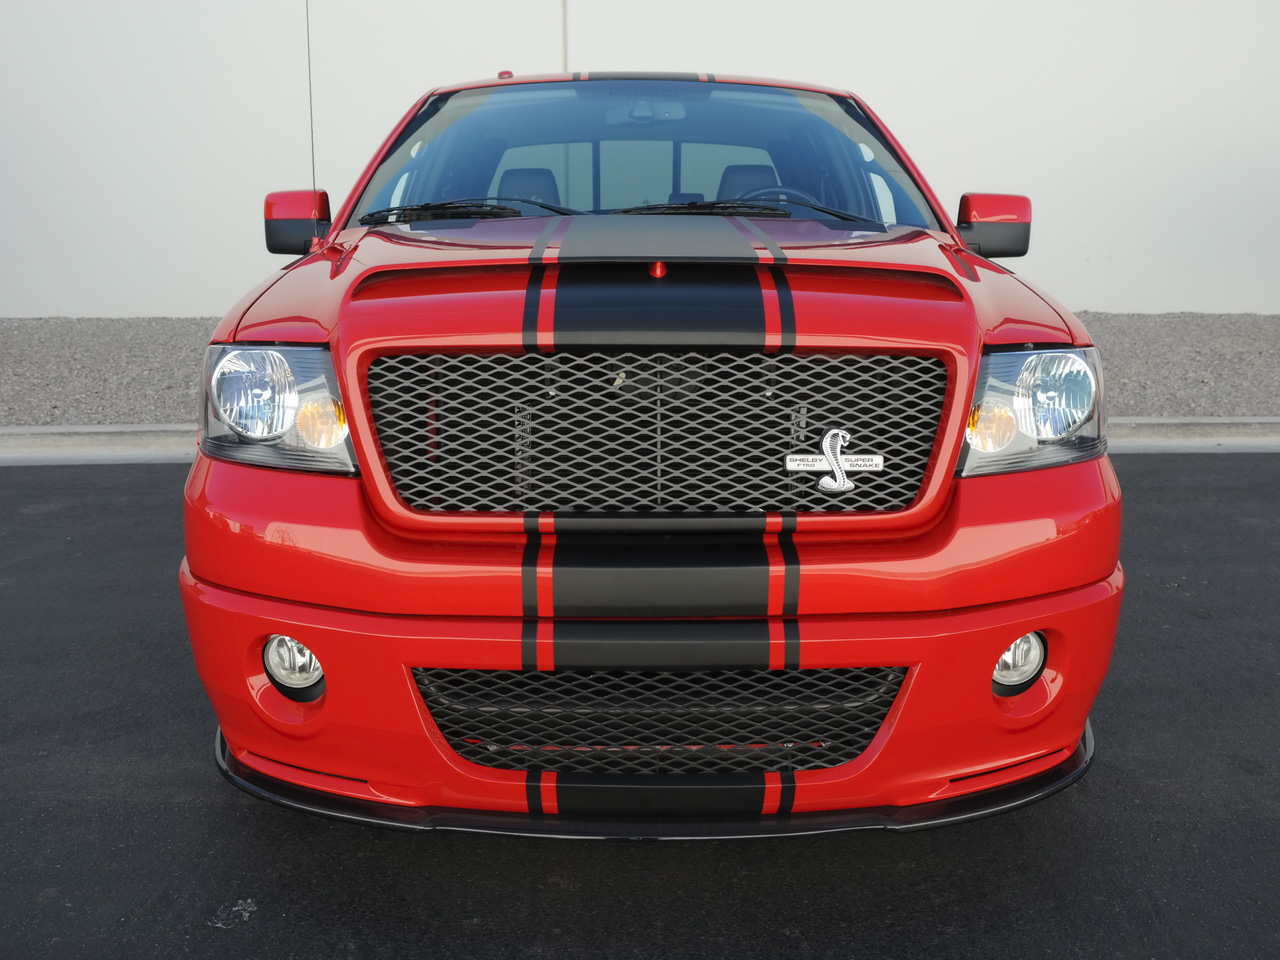 Ford Shelby GT500 Super Snake F150